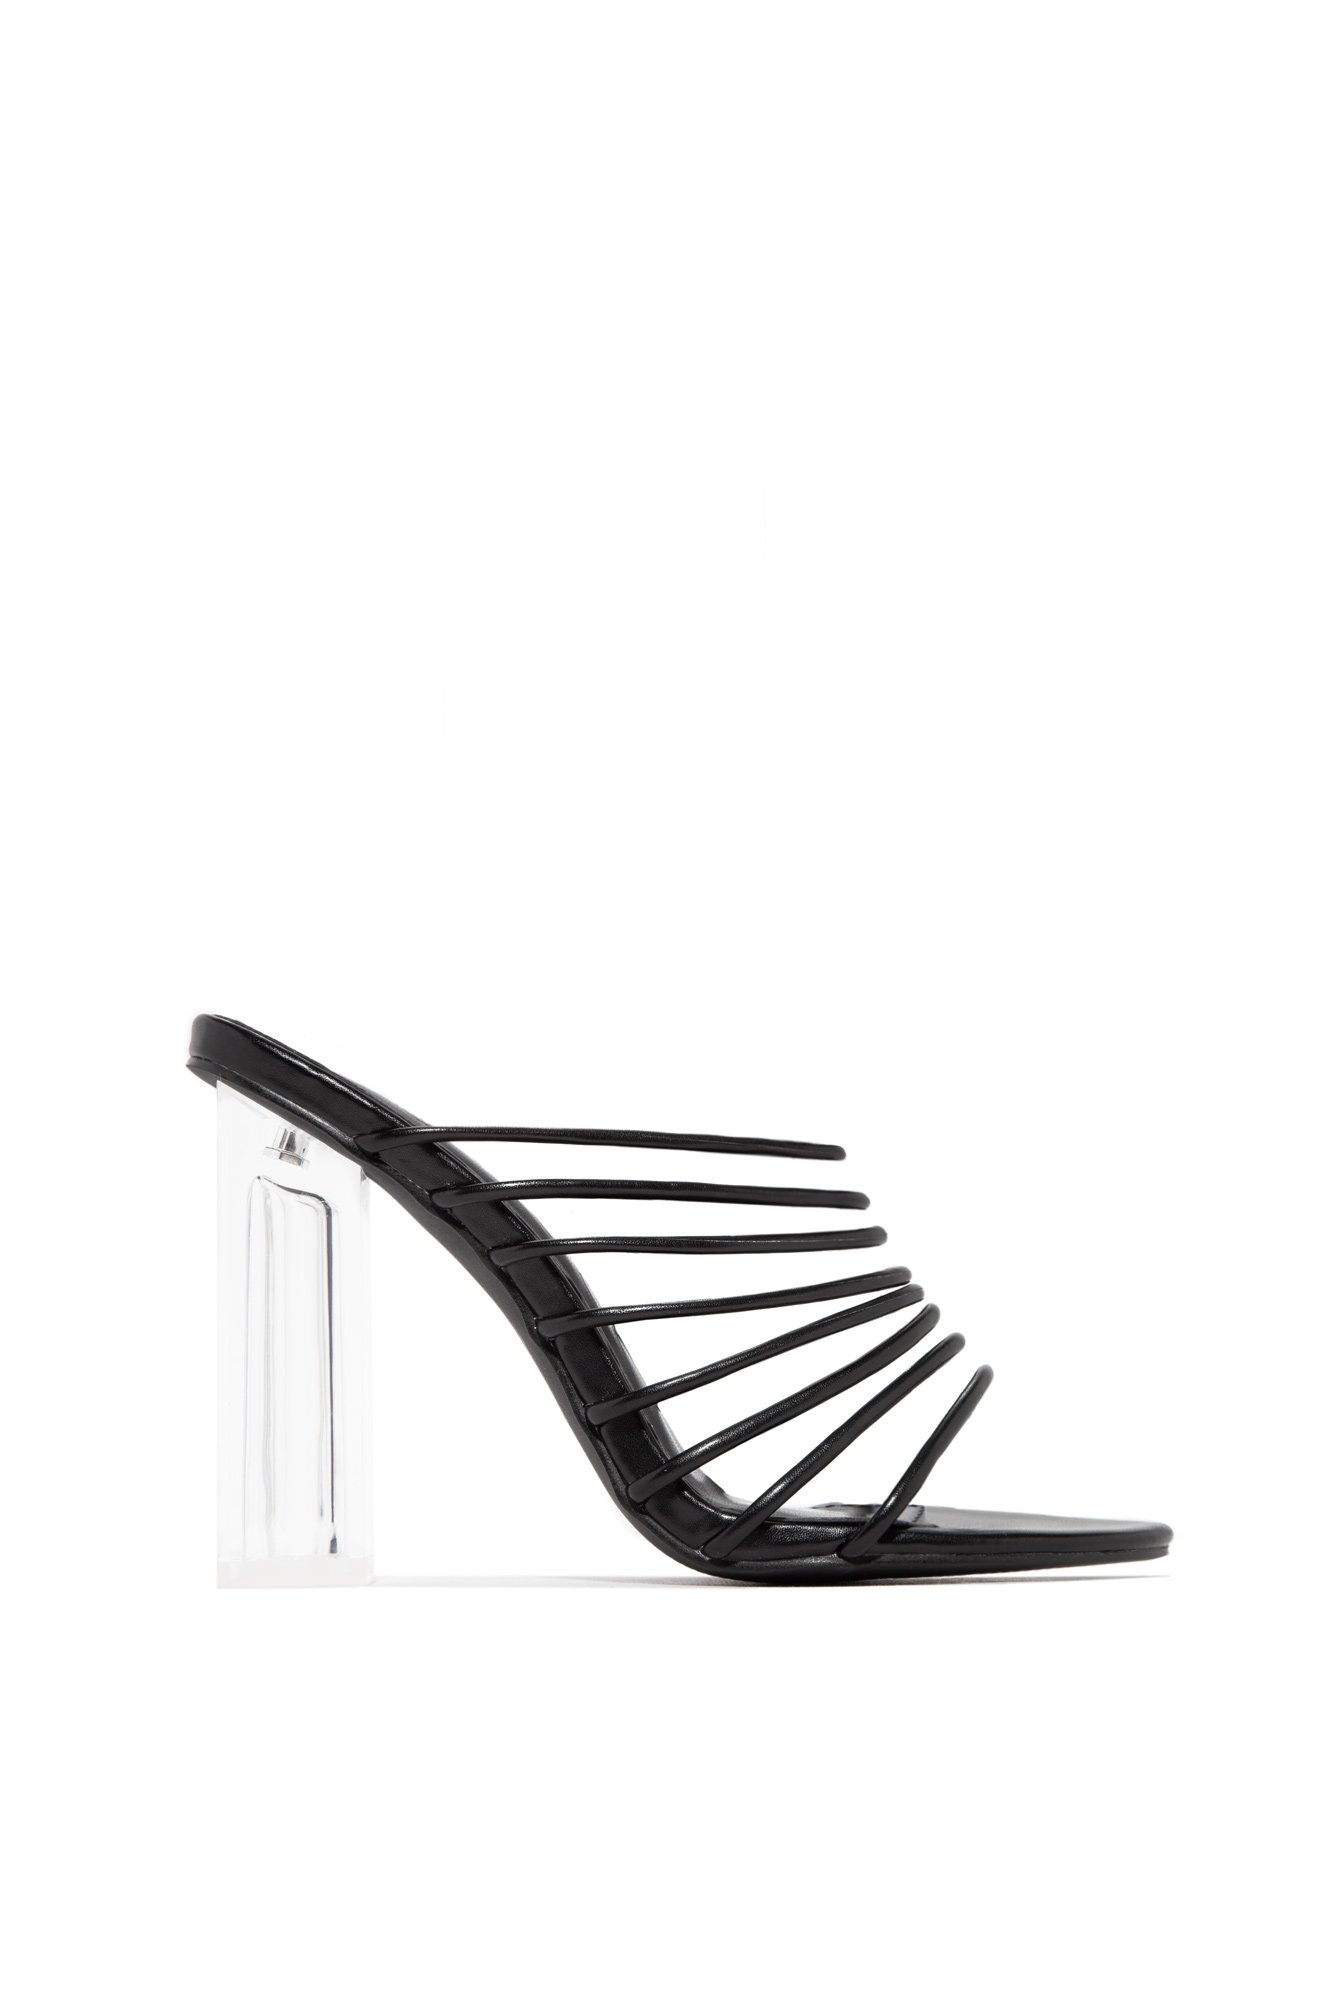 8a2578ccca4 Details about CAPE ROBBIN Fia Strappy Open Toe Chunky Clear Heel Mule Pump  Sexy Sandals